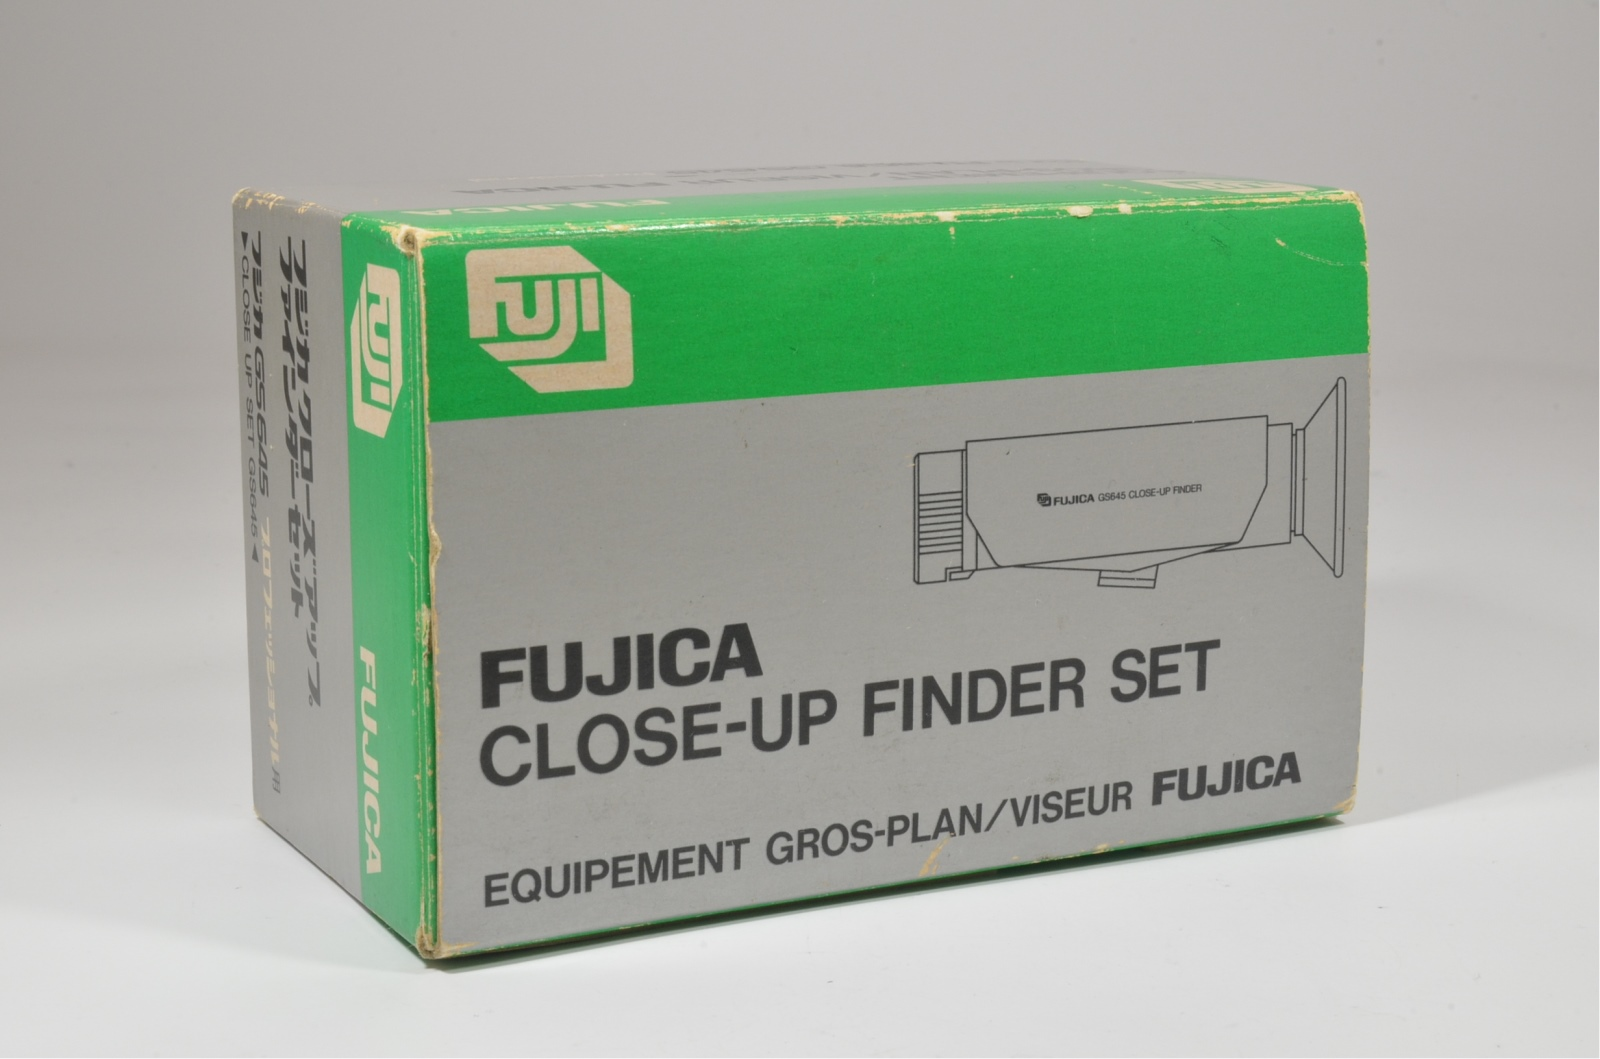 fuji fujifilm fujica gs645 close-up finder set very rare!